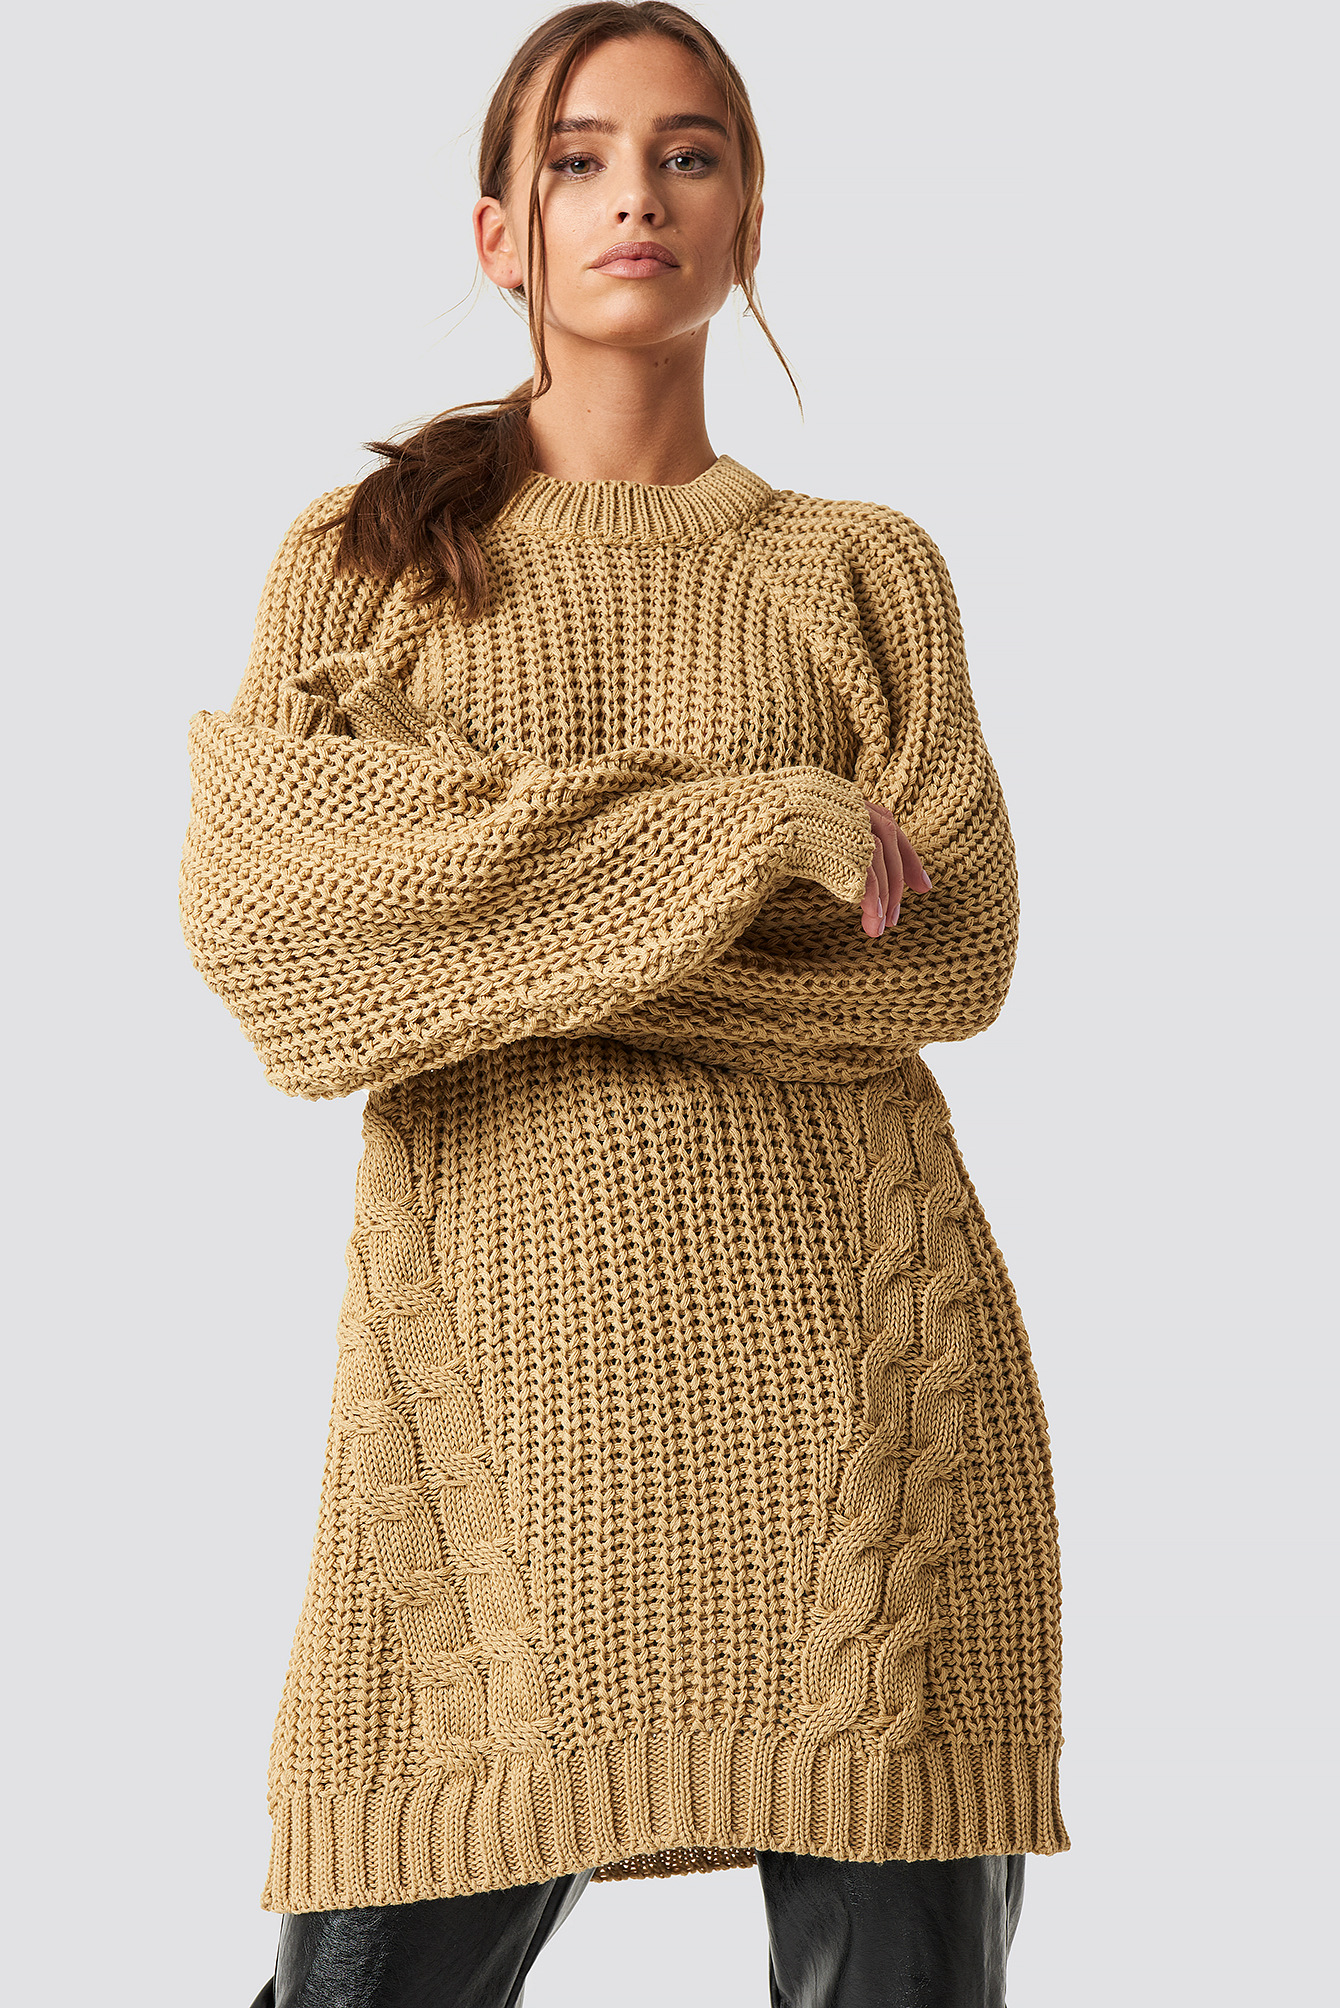 dae9db534 Oversized Knitted Sweater Beige | na-kd.com